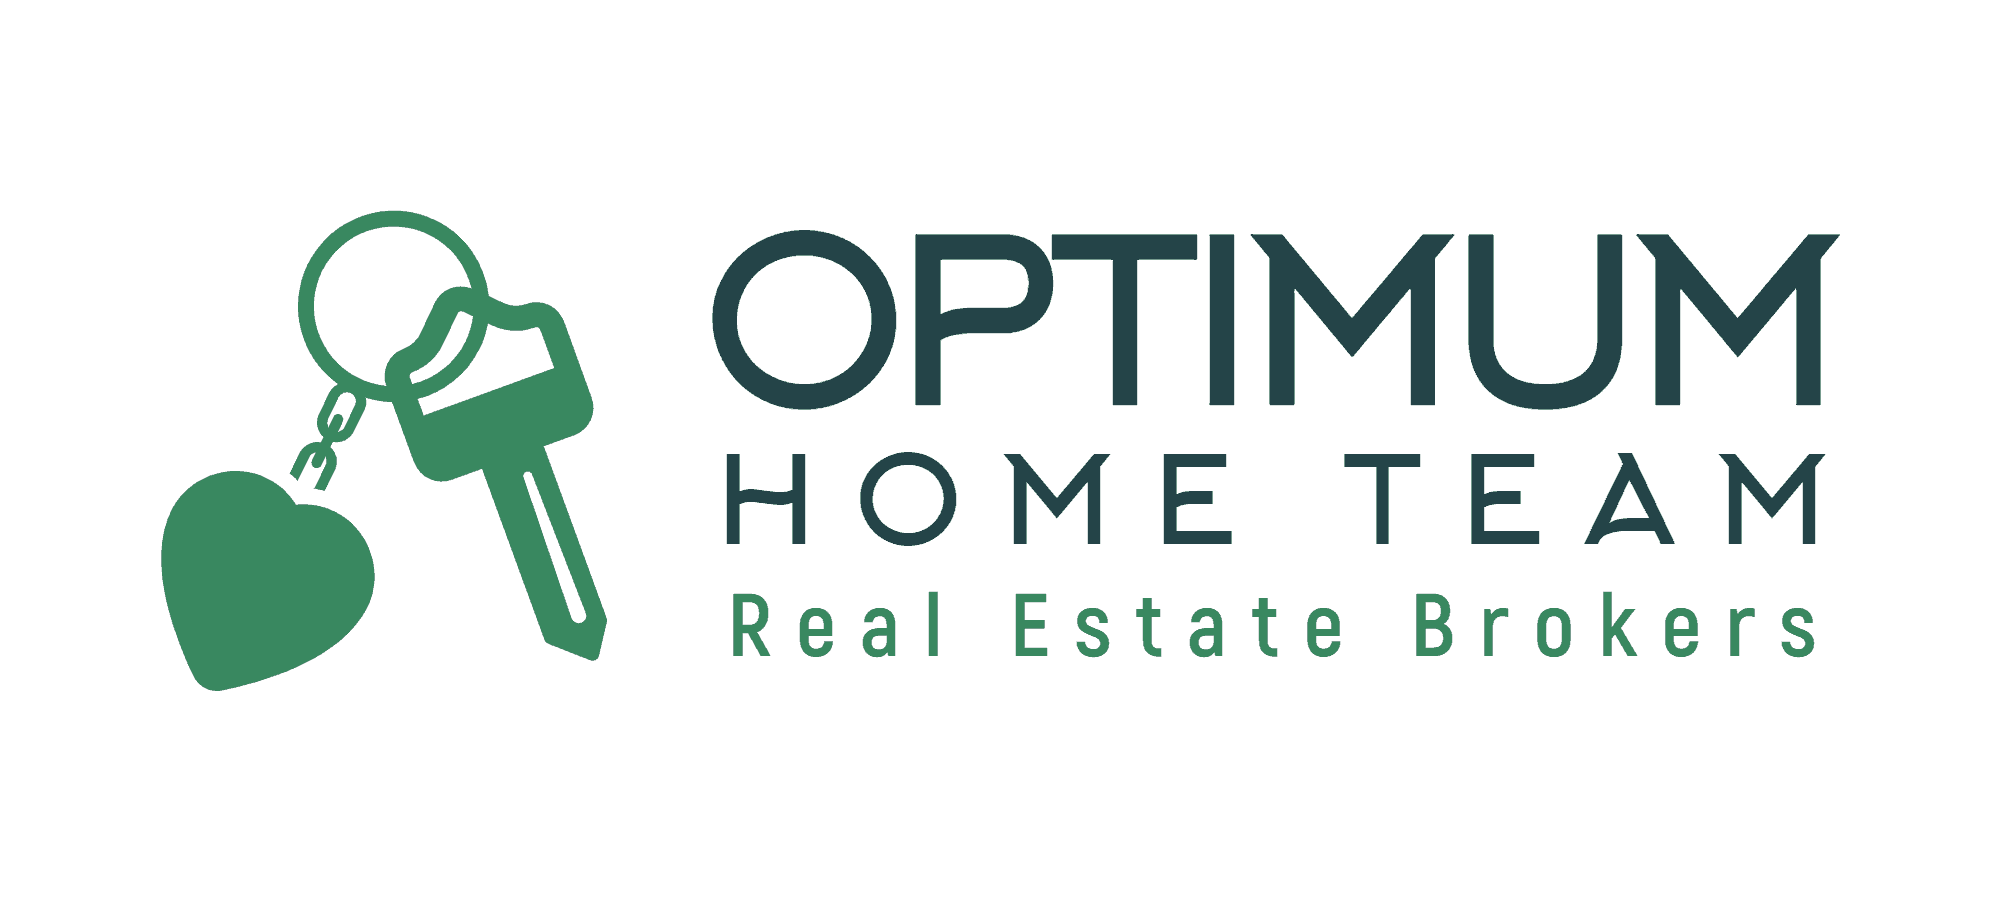 Optimum Home Team